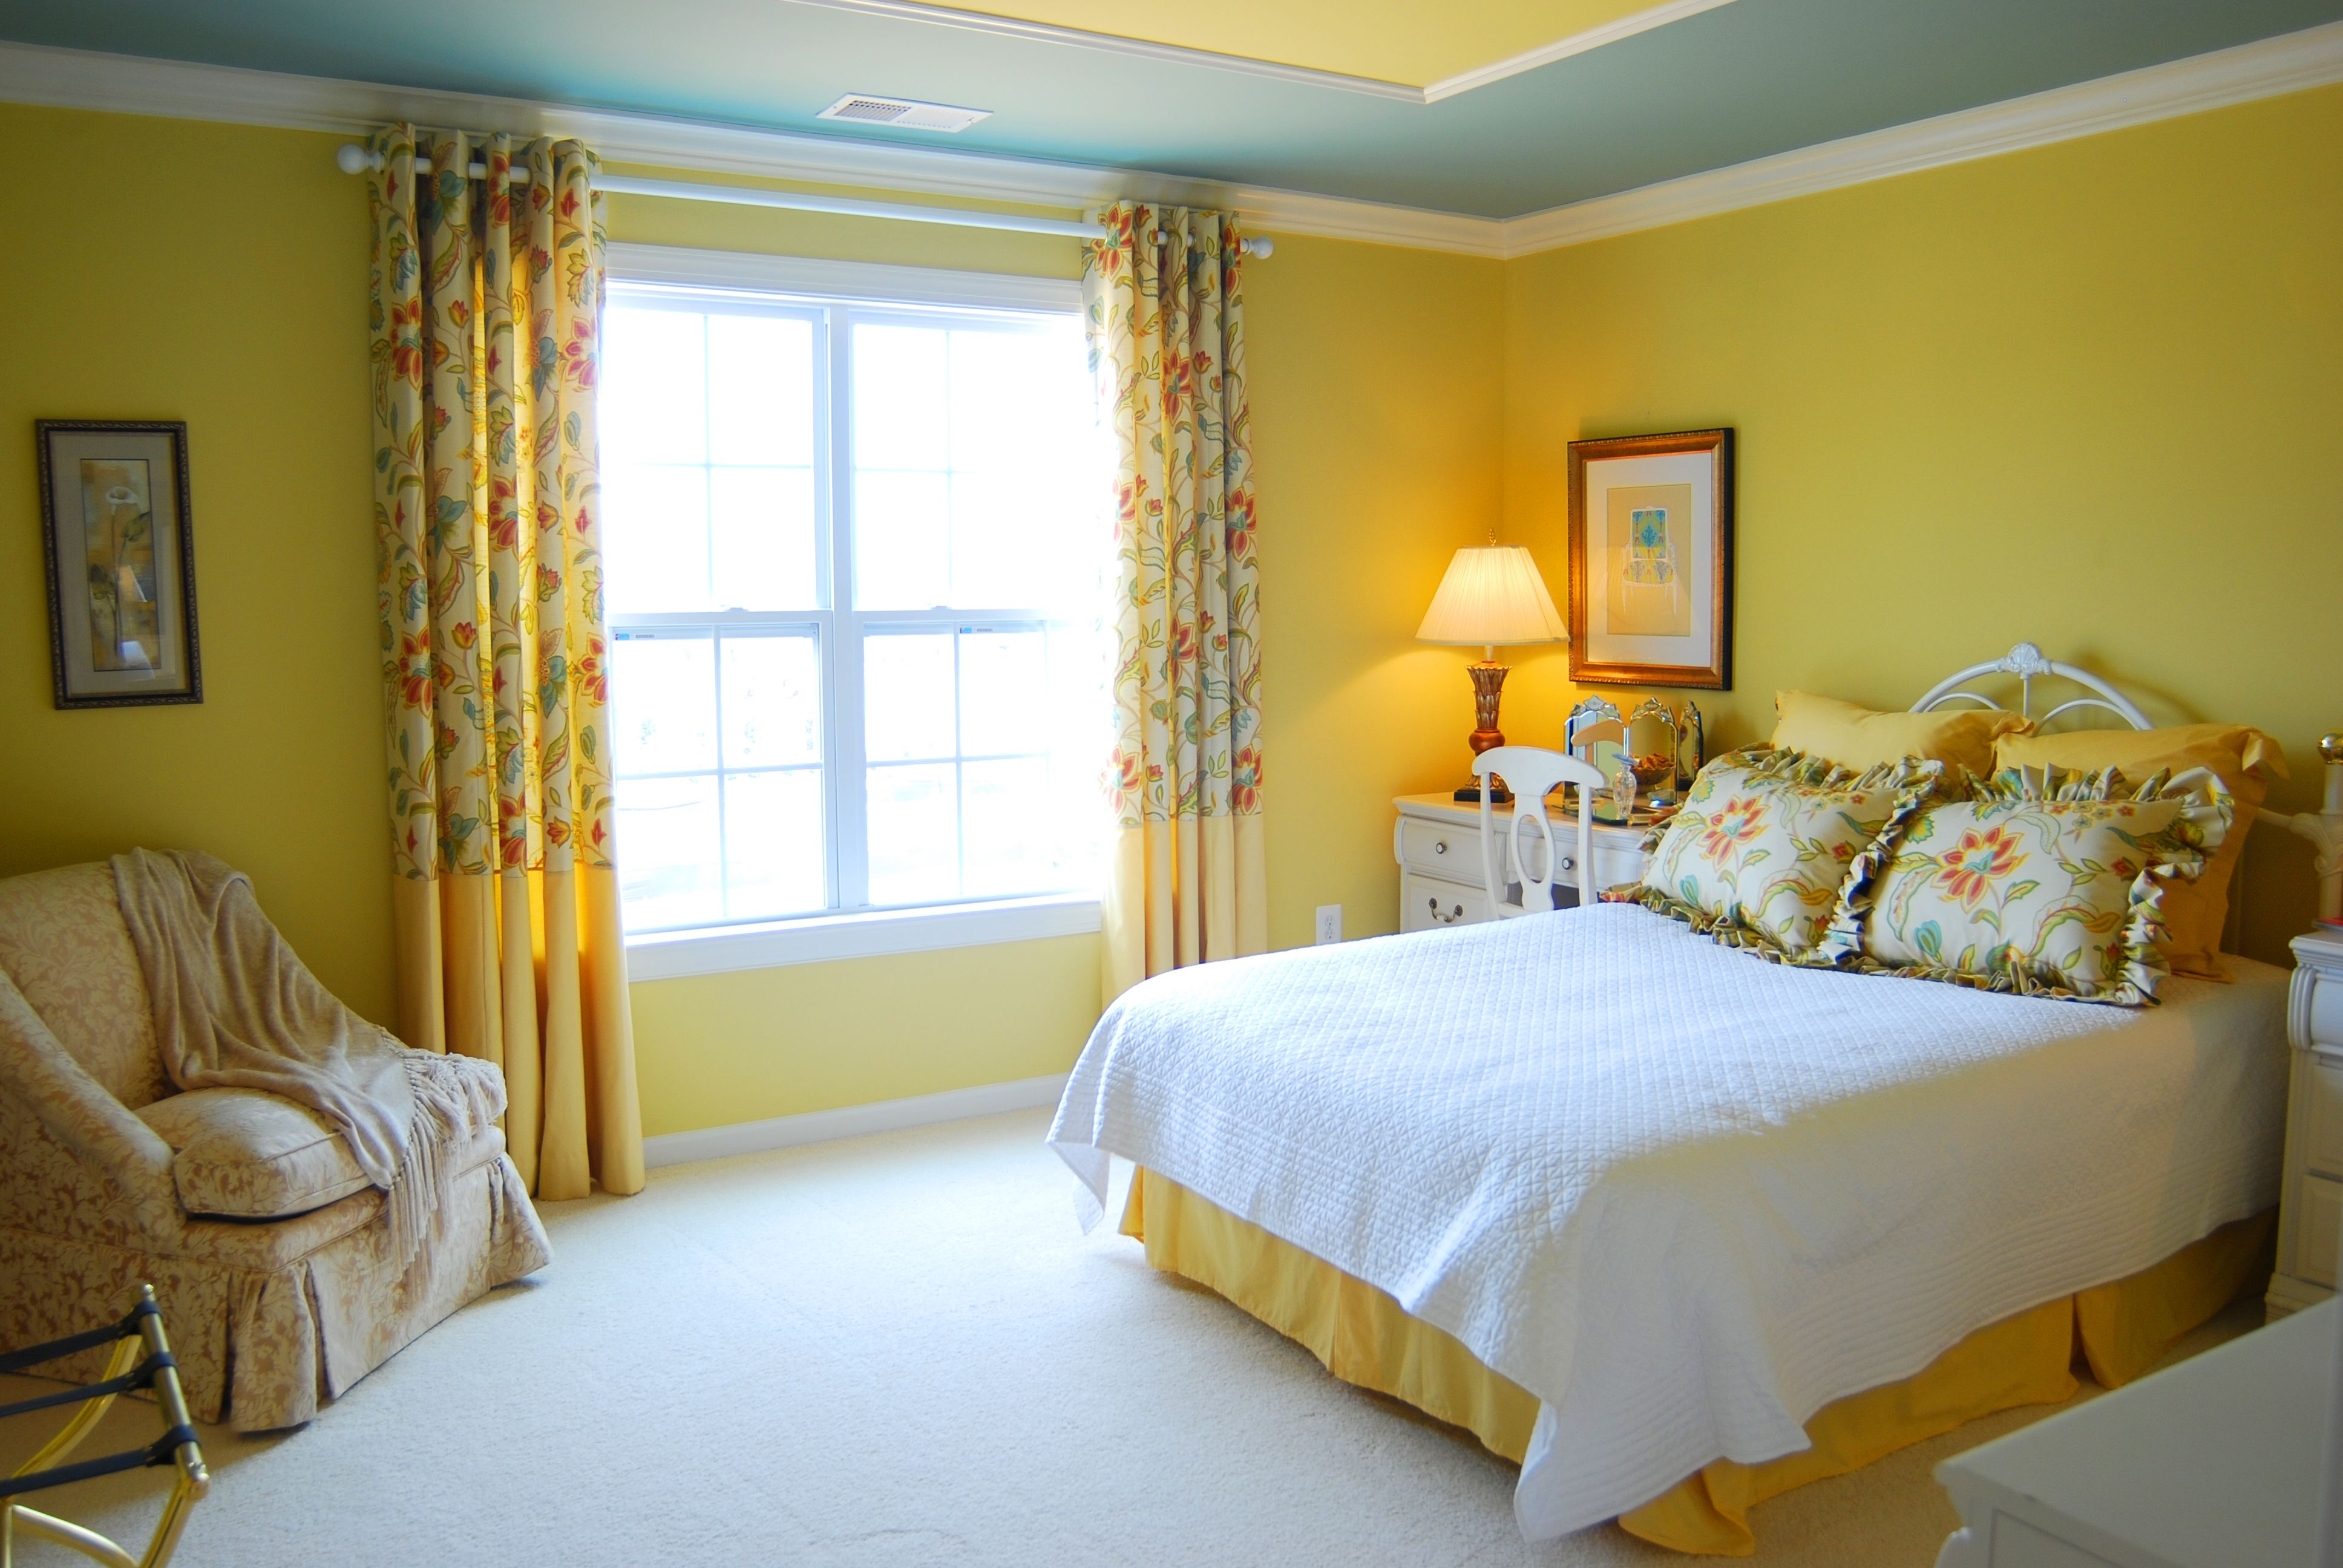 Simple Bedroom Colour Ideas teenage bedroom color schemes - home design